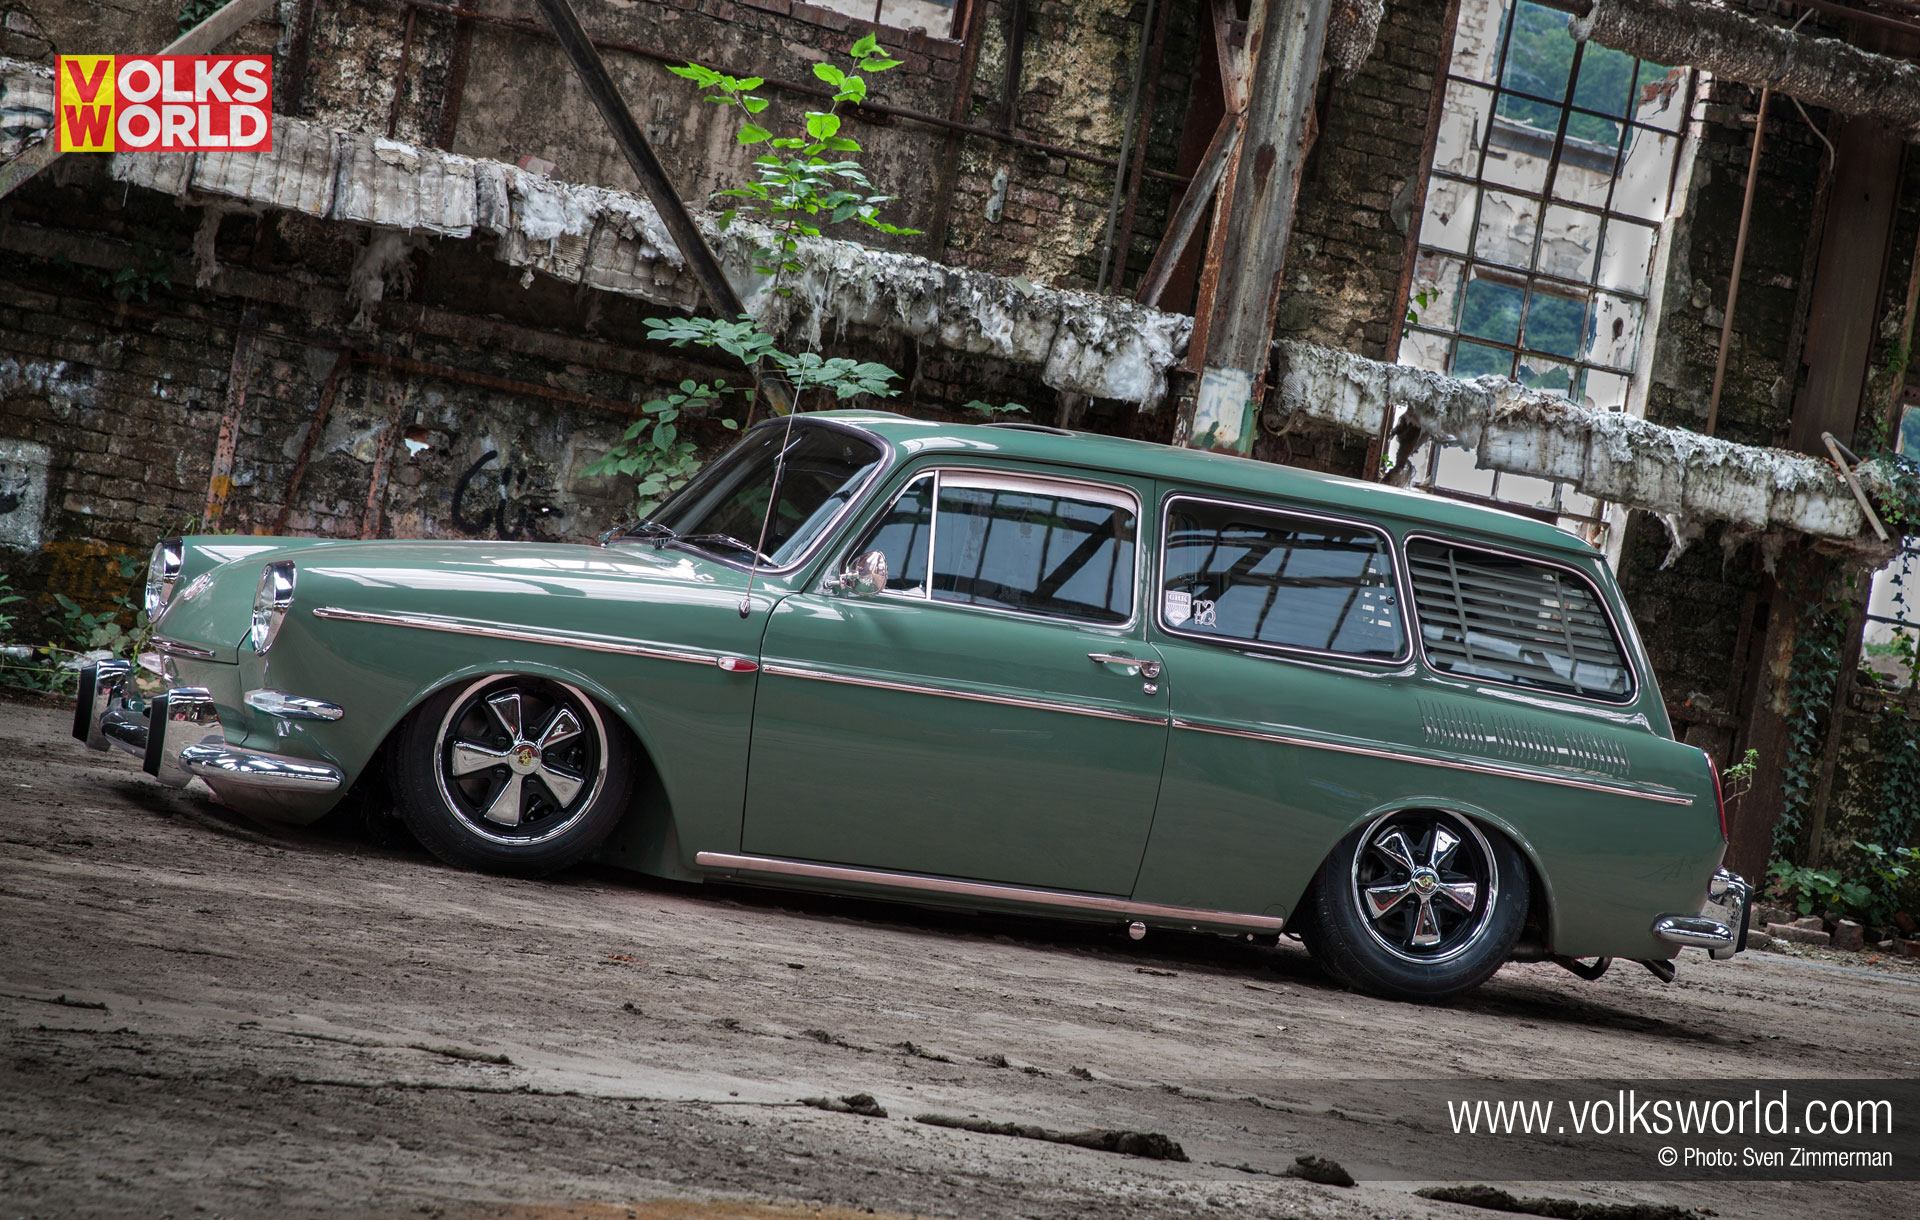 1964 vw type 3 squareback volksworld for Wallpaper sale uk